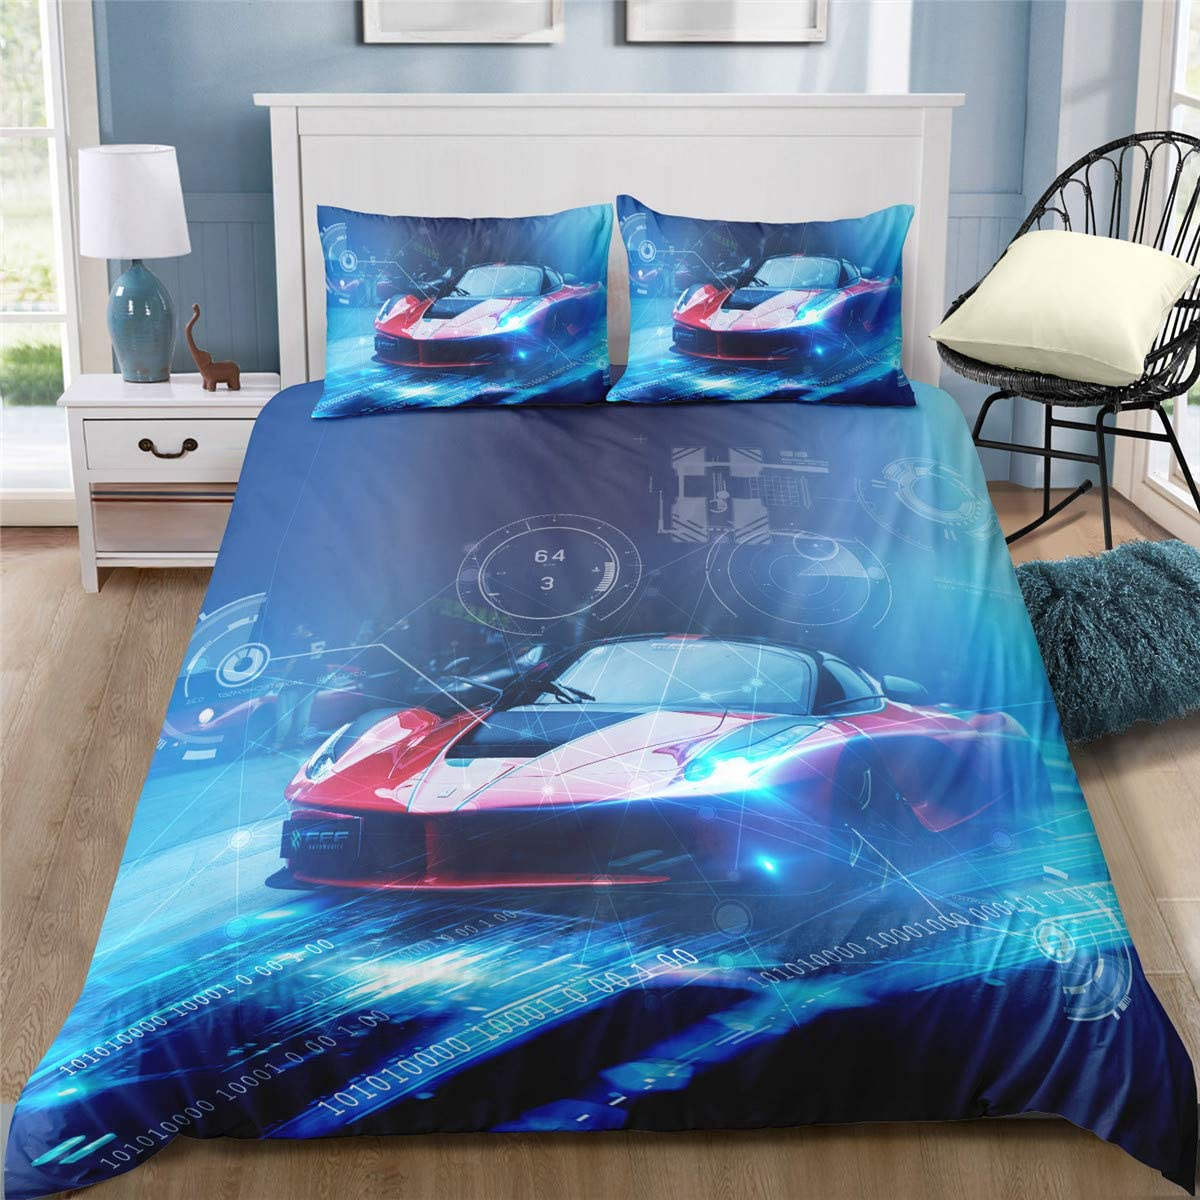 Kids Race Car Duvet Cover Sets Twin Size 2 Piece